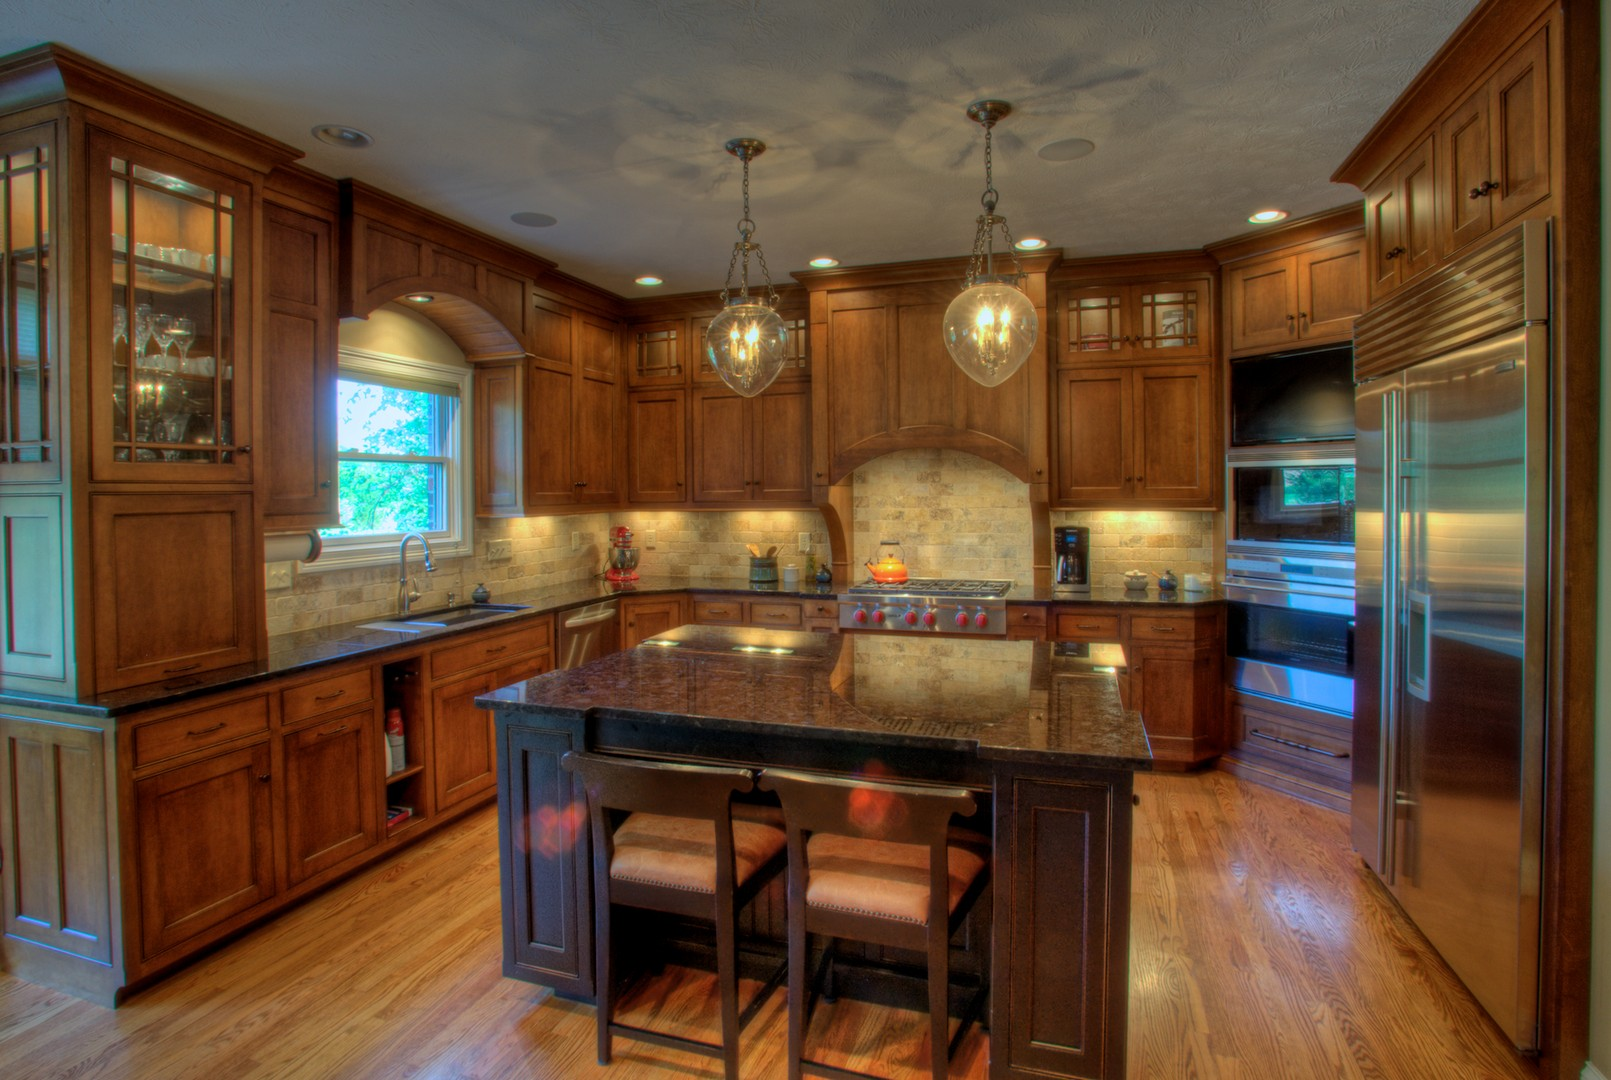 Daniel DeVol Builder - Bellbrook Kitchen